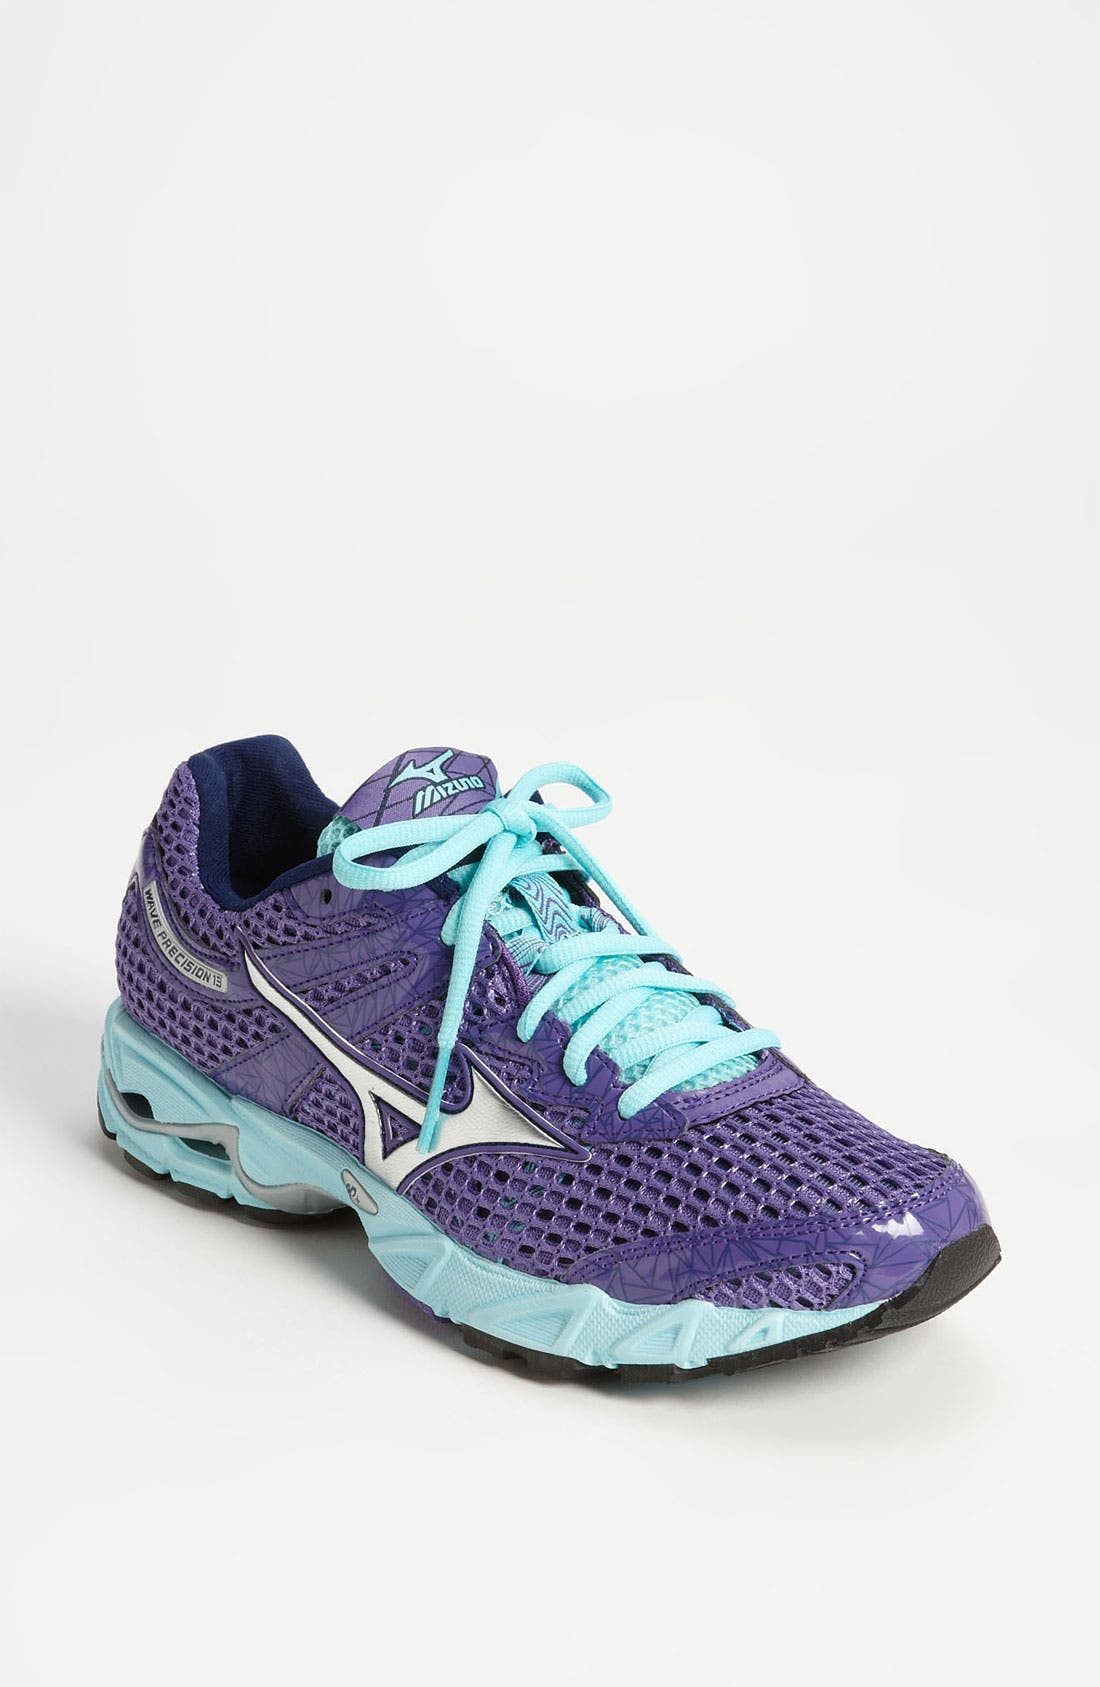 Alternate Image 1 Selected - Mizuno 'Wave Precision 13' Running Shoe (Women)(Retail Price: $109.95)